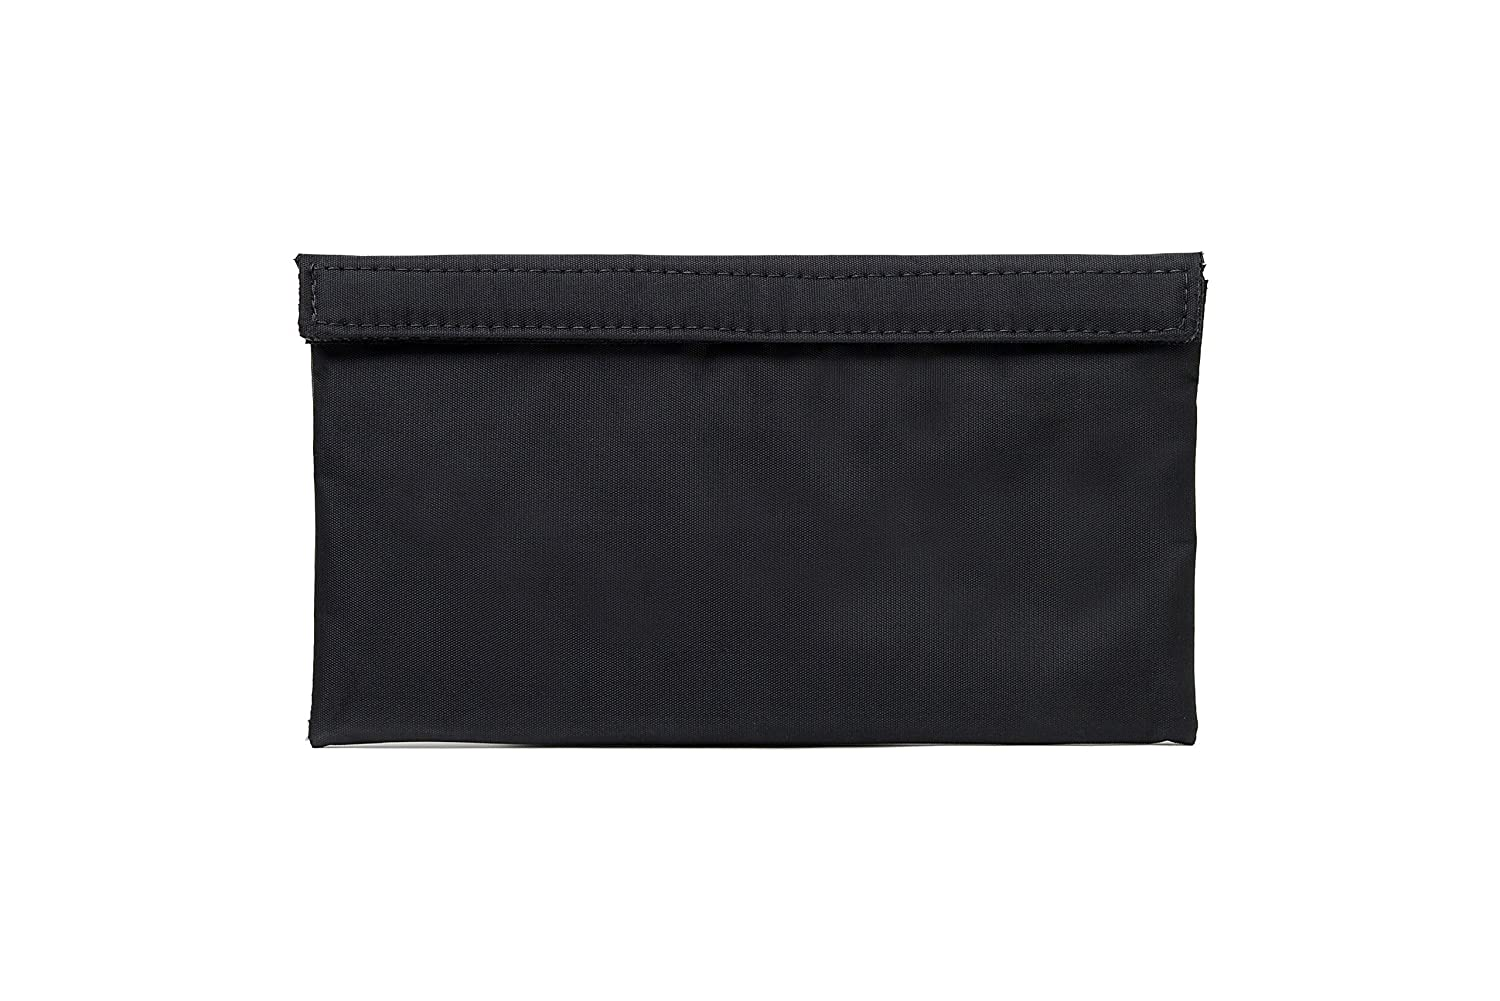 Abscent The Banker Bag Reusable Odor-Absorbing Pouch, Black BNK101